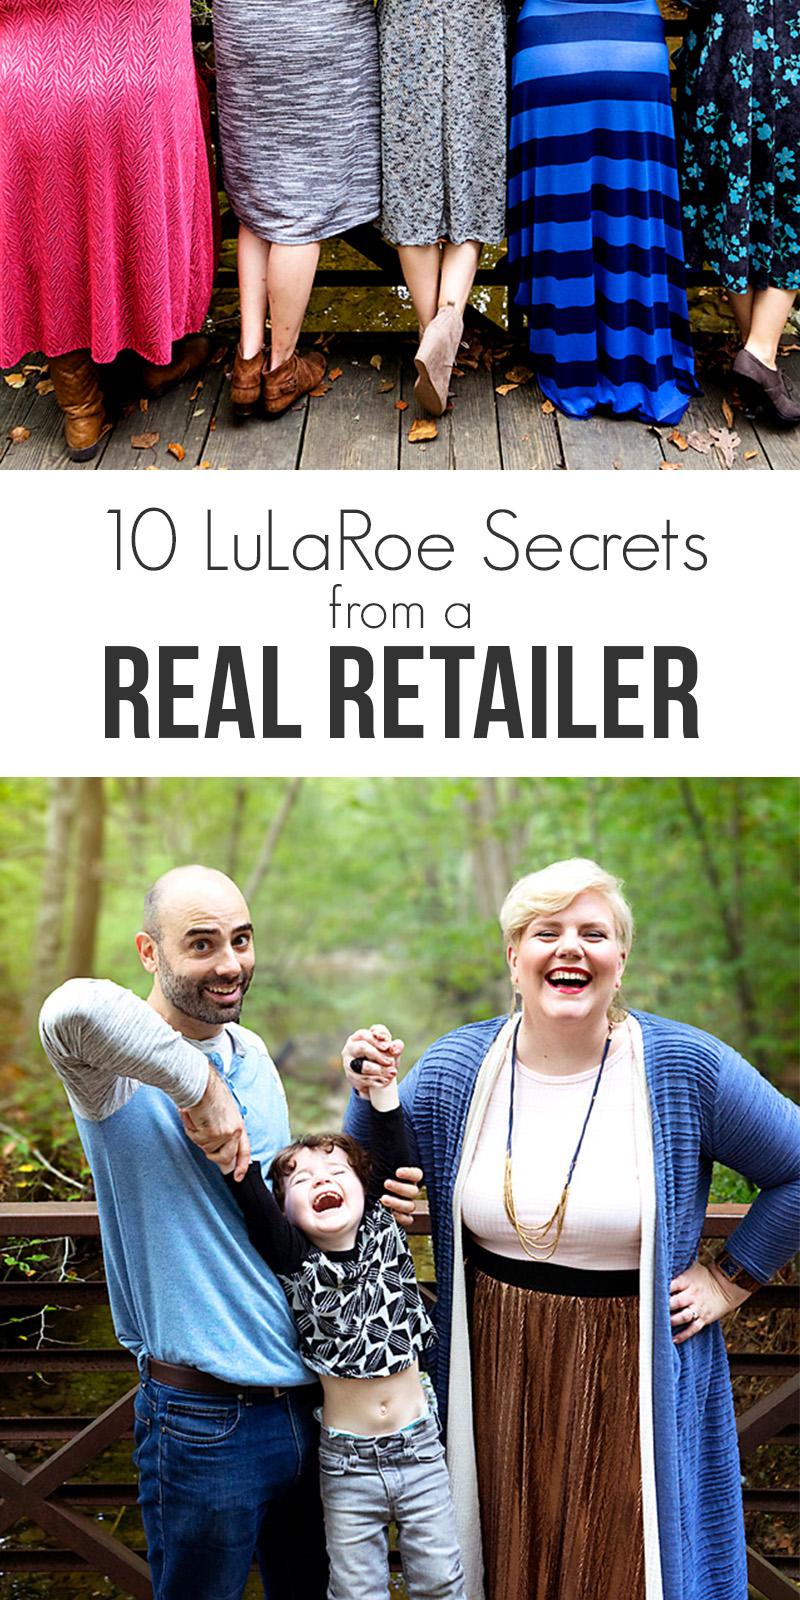 10 Things This LuLaRoe Retailer Wish You Knew